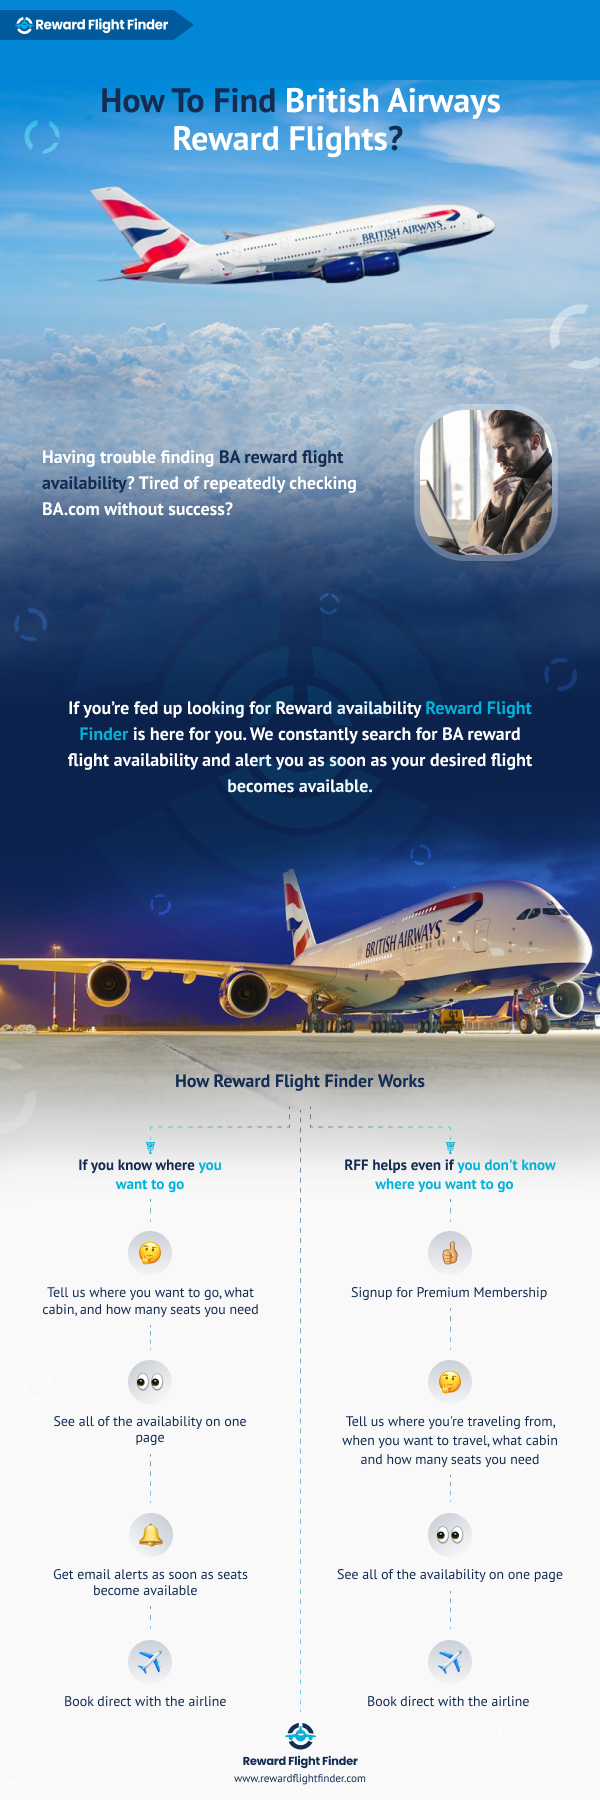 How To Find British Airways Reward Flights?